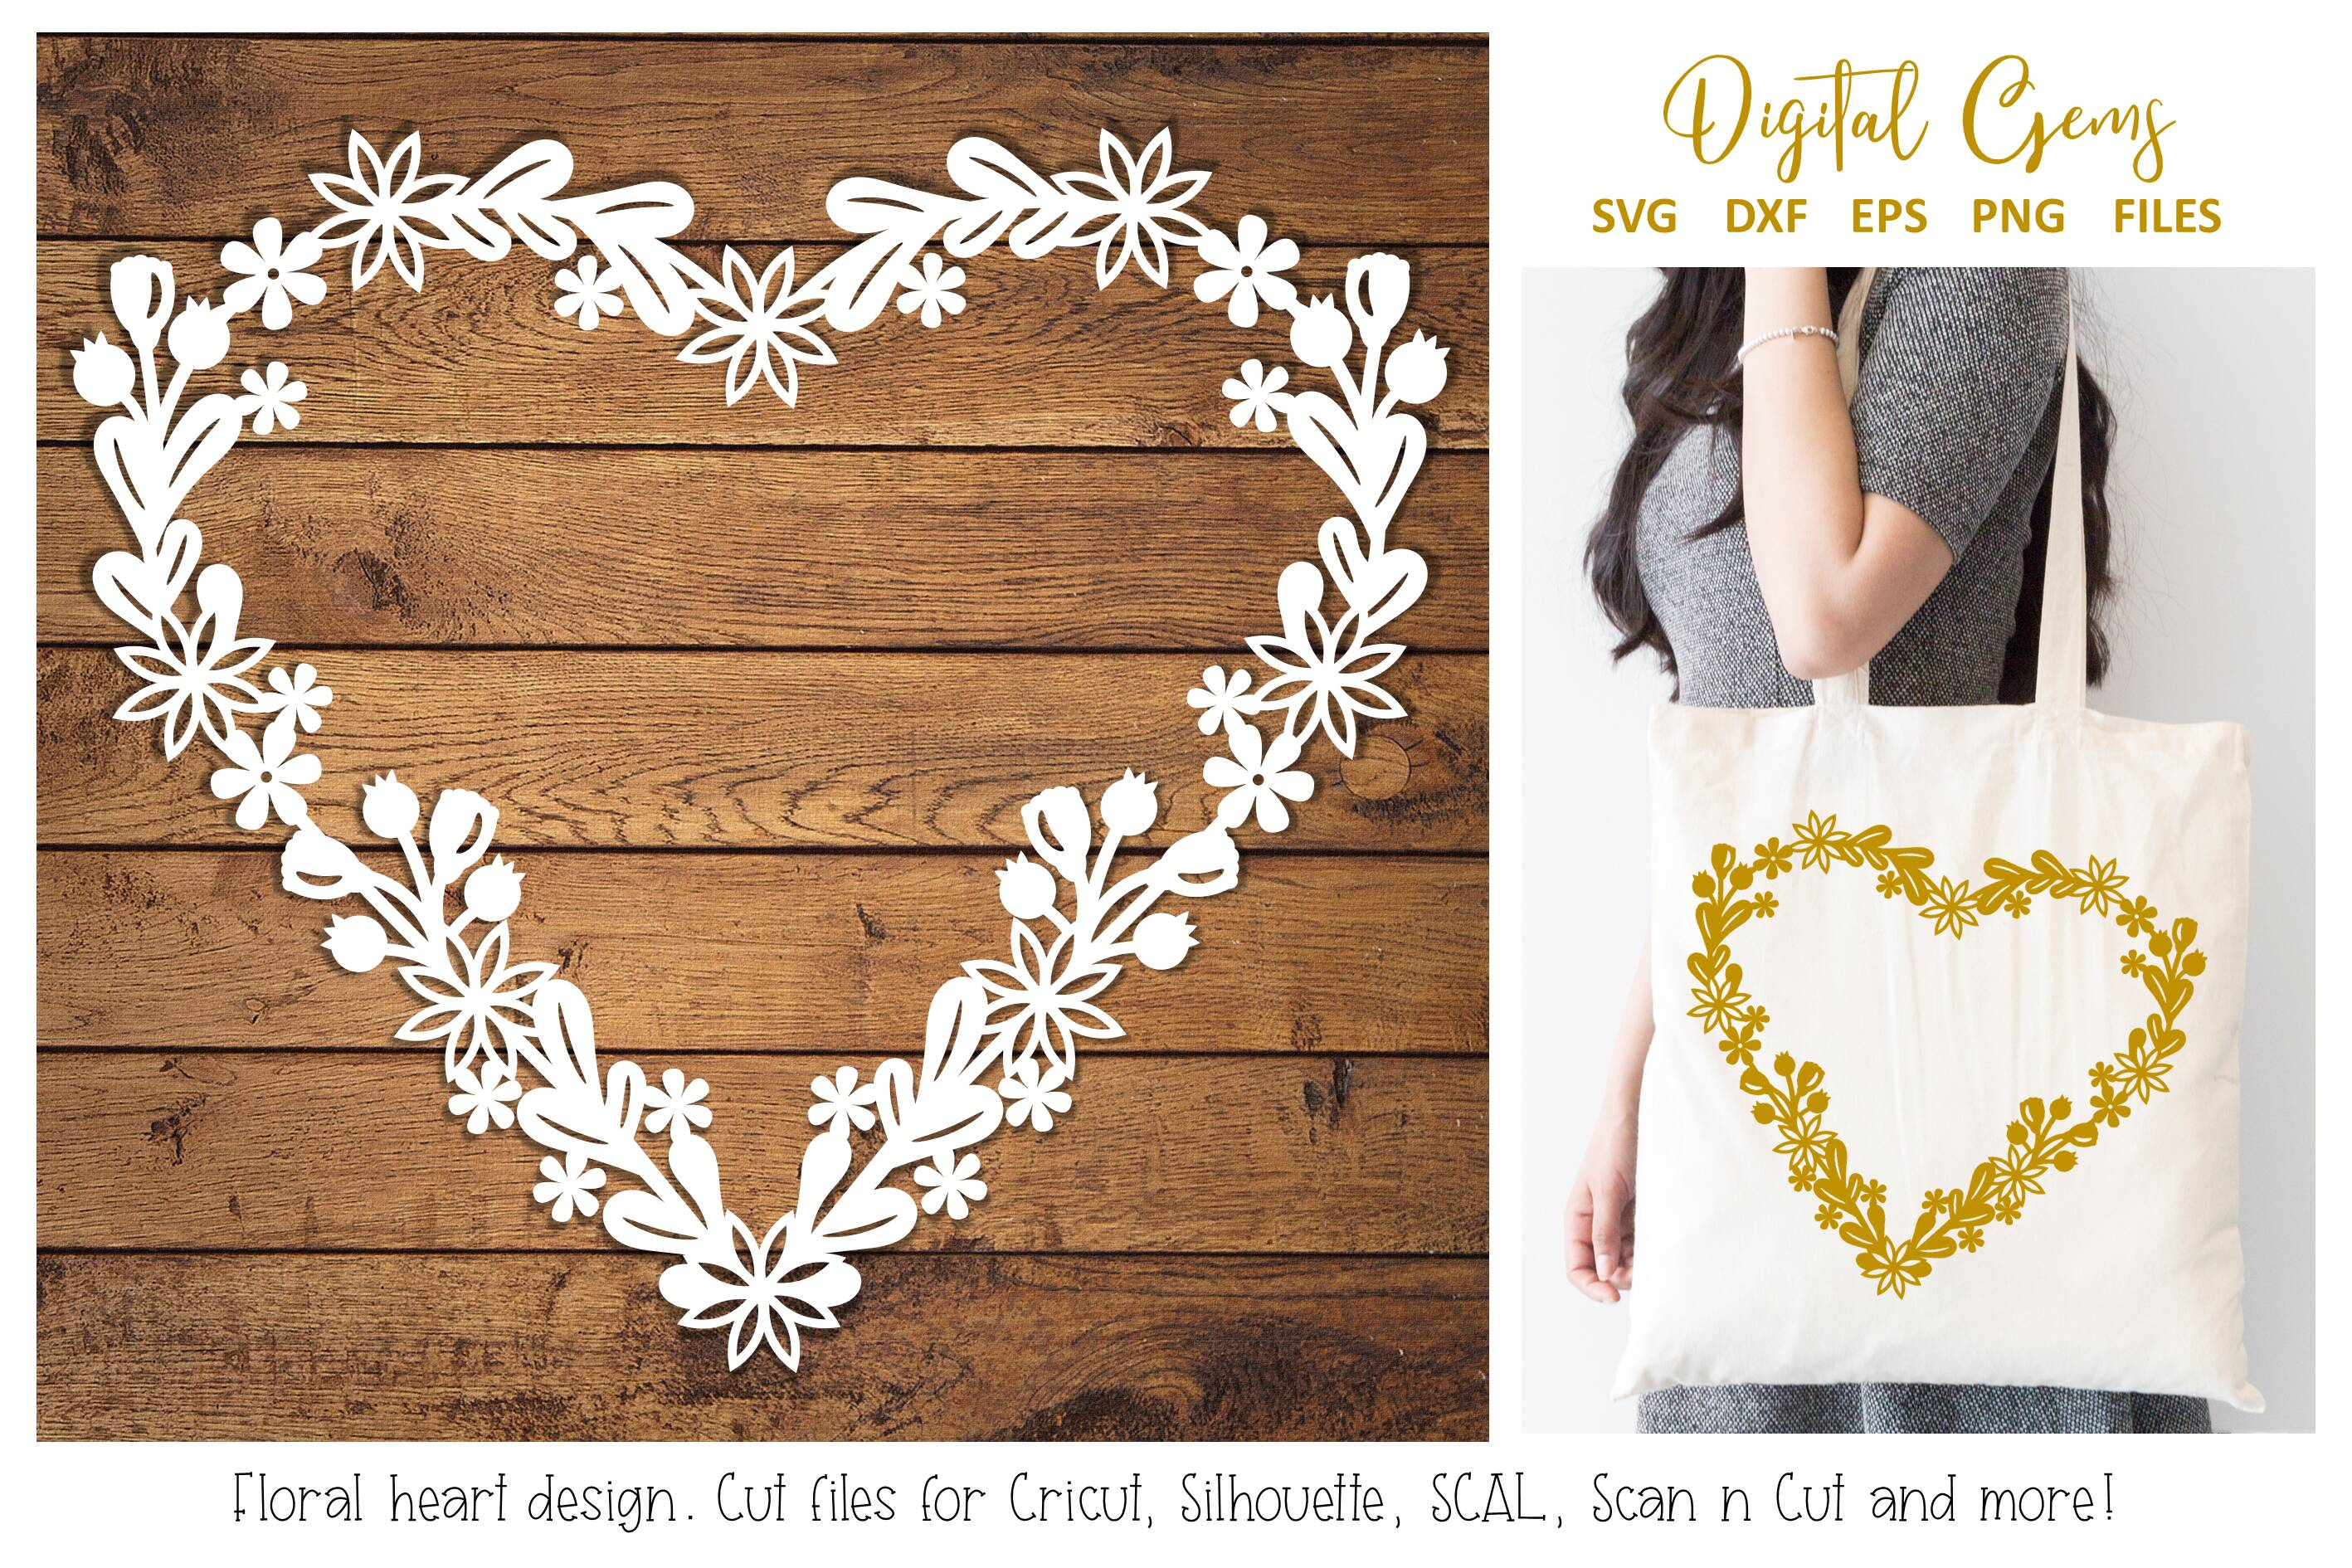 Download Free Floral Heart Paper Cut Design Graphic By Digital Gems Creative for Cricut Explore, Silhouette and other cutting machines.